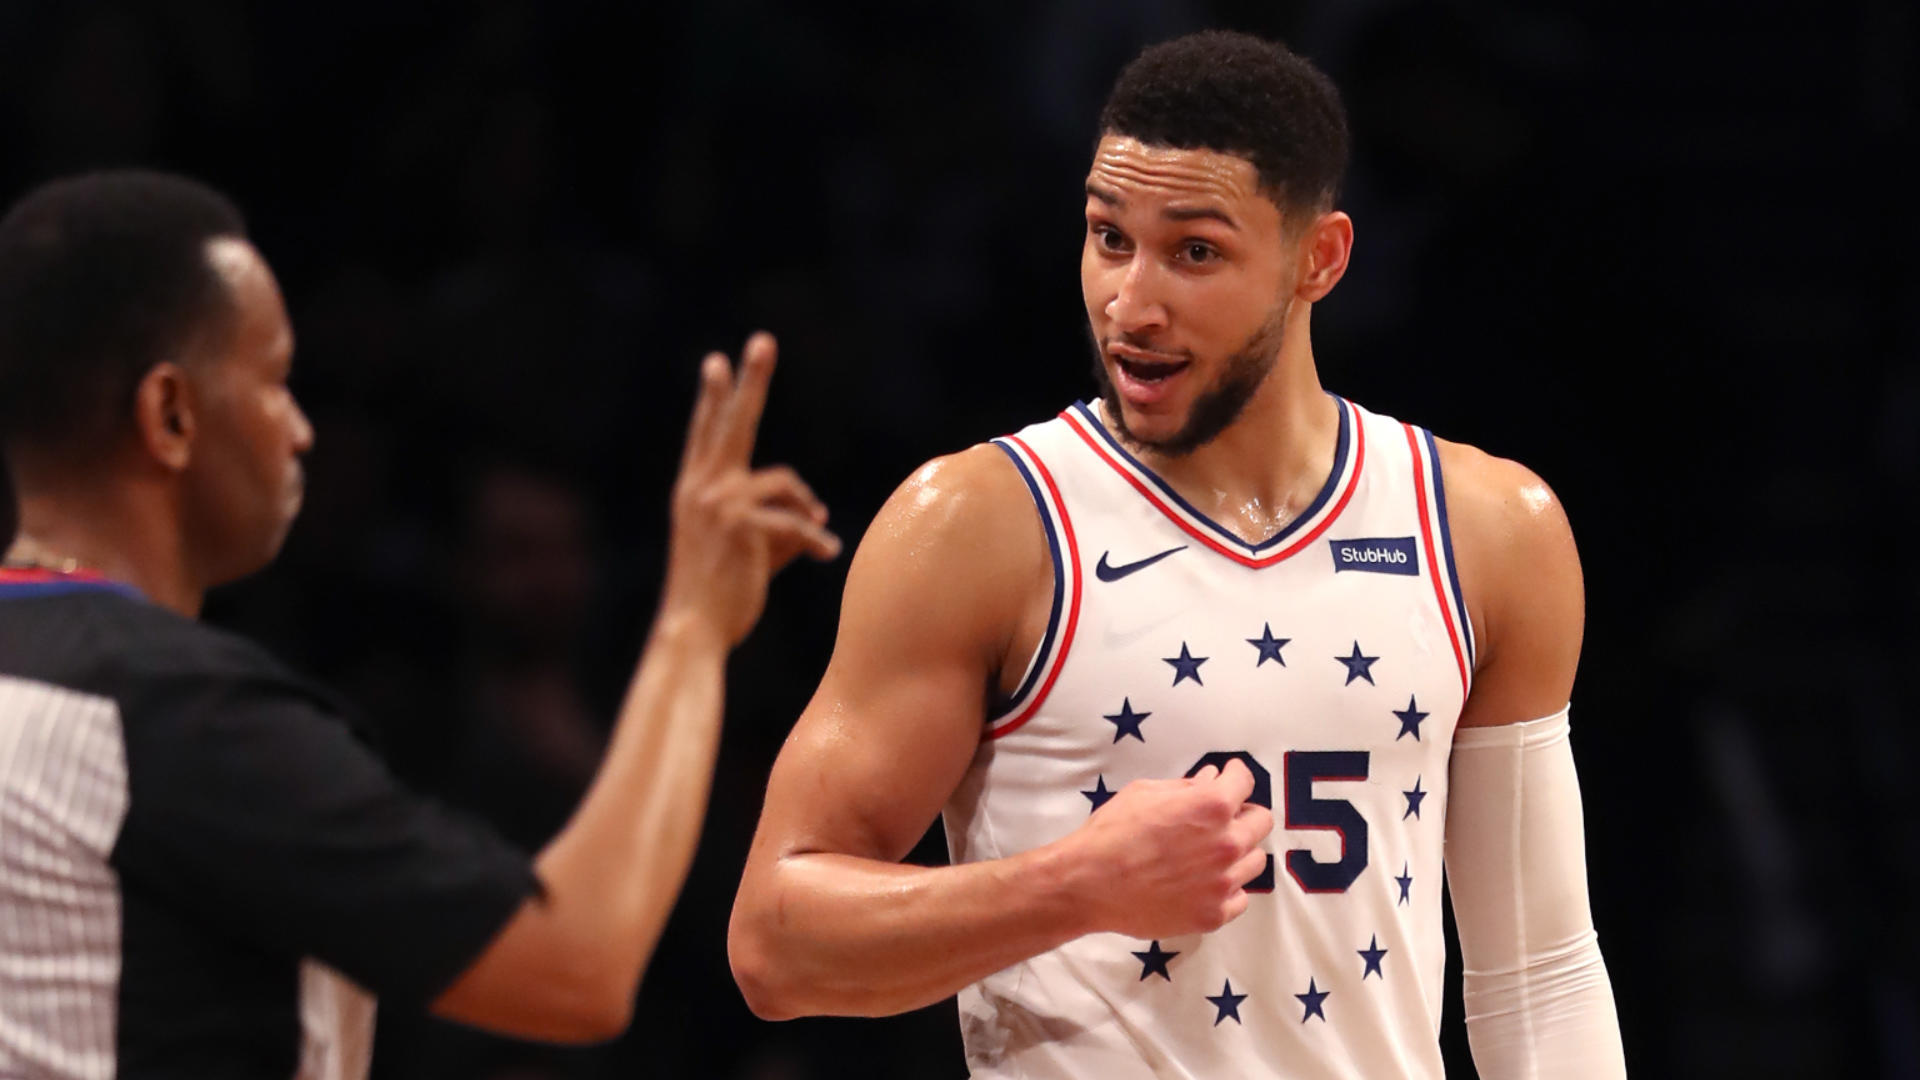 NBA Playoffs 2019: Sixers' Ben Simmons responds to criticism from Nets' Jared Dudley with impressive game, trolling